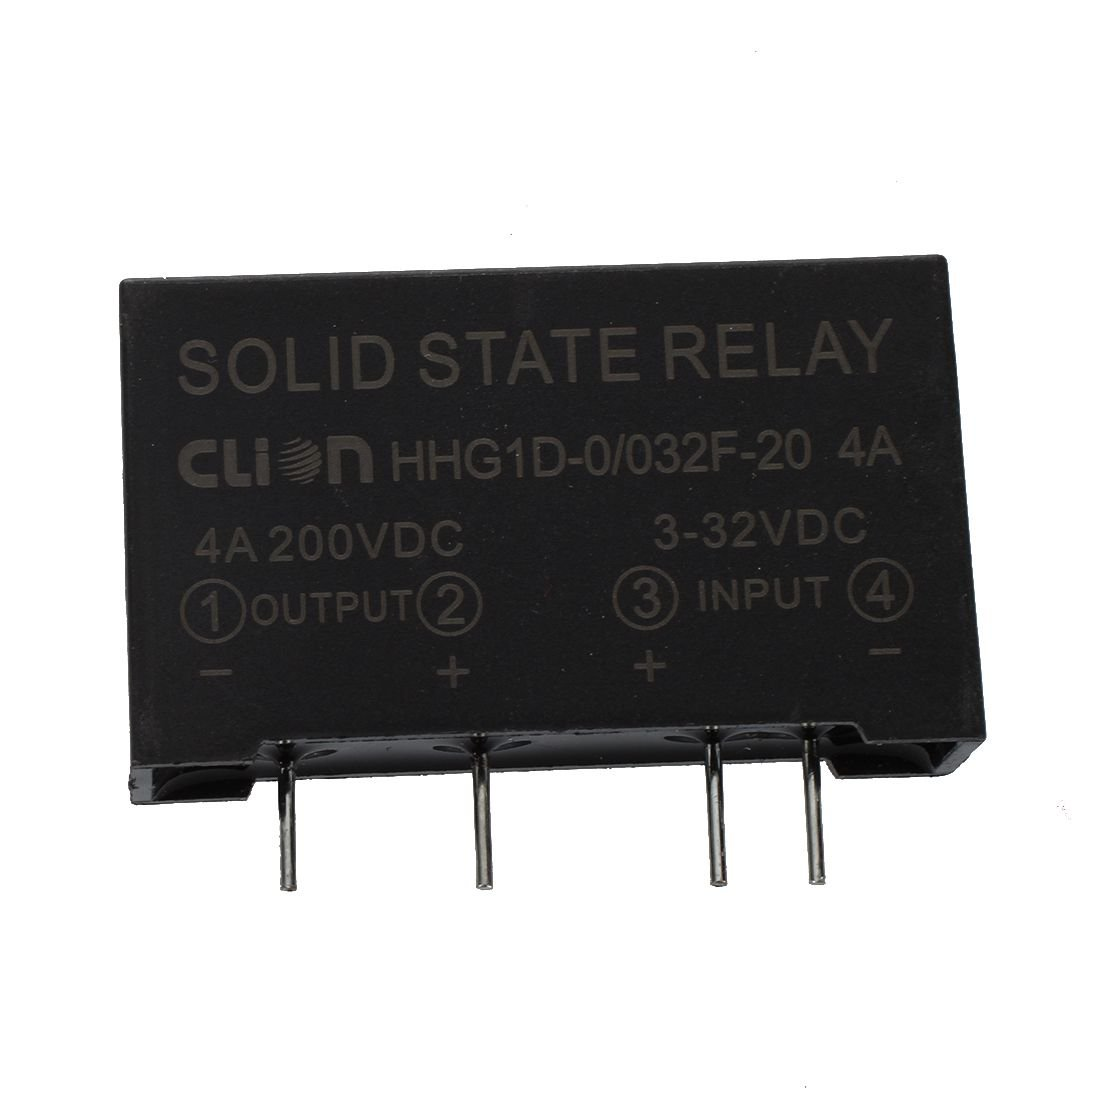 SODIAL HHG1D-0//032F-20 4A Solid-State-Relais HHG1D-0//032F-20 Solid-State-Relais R